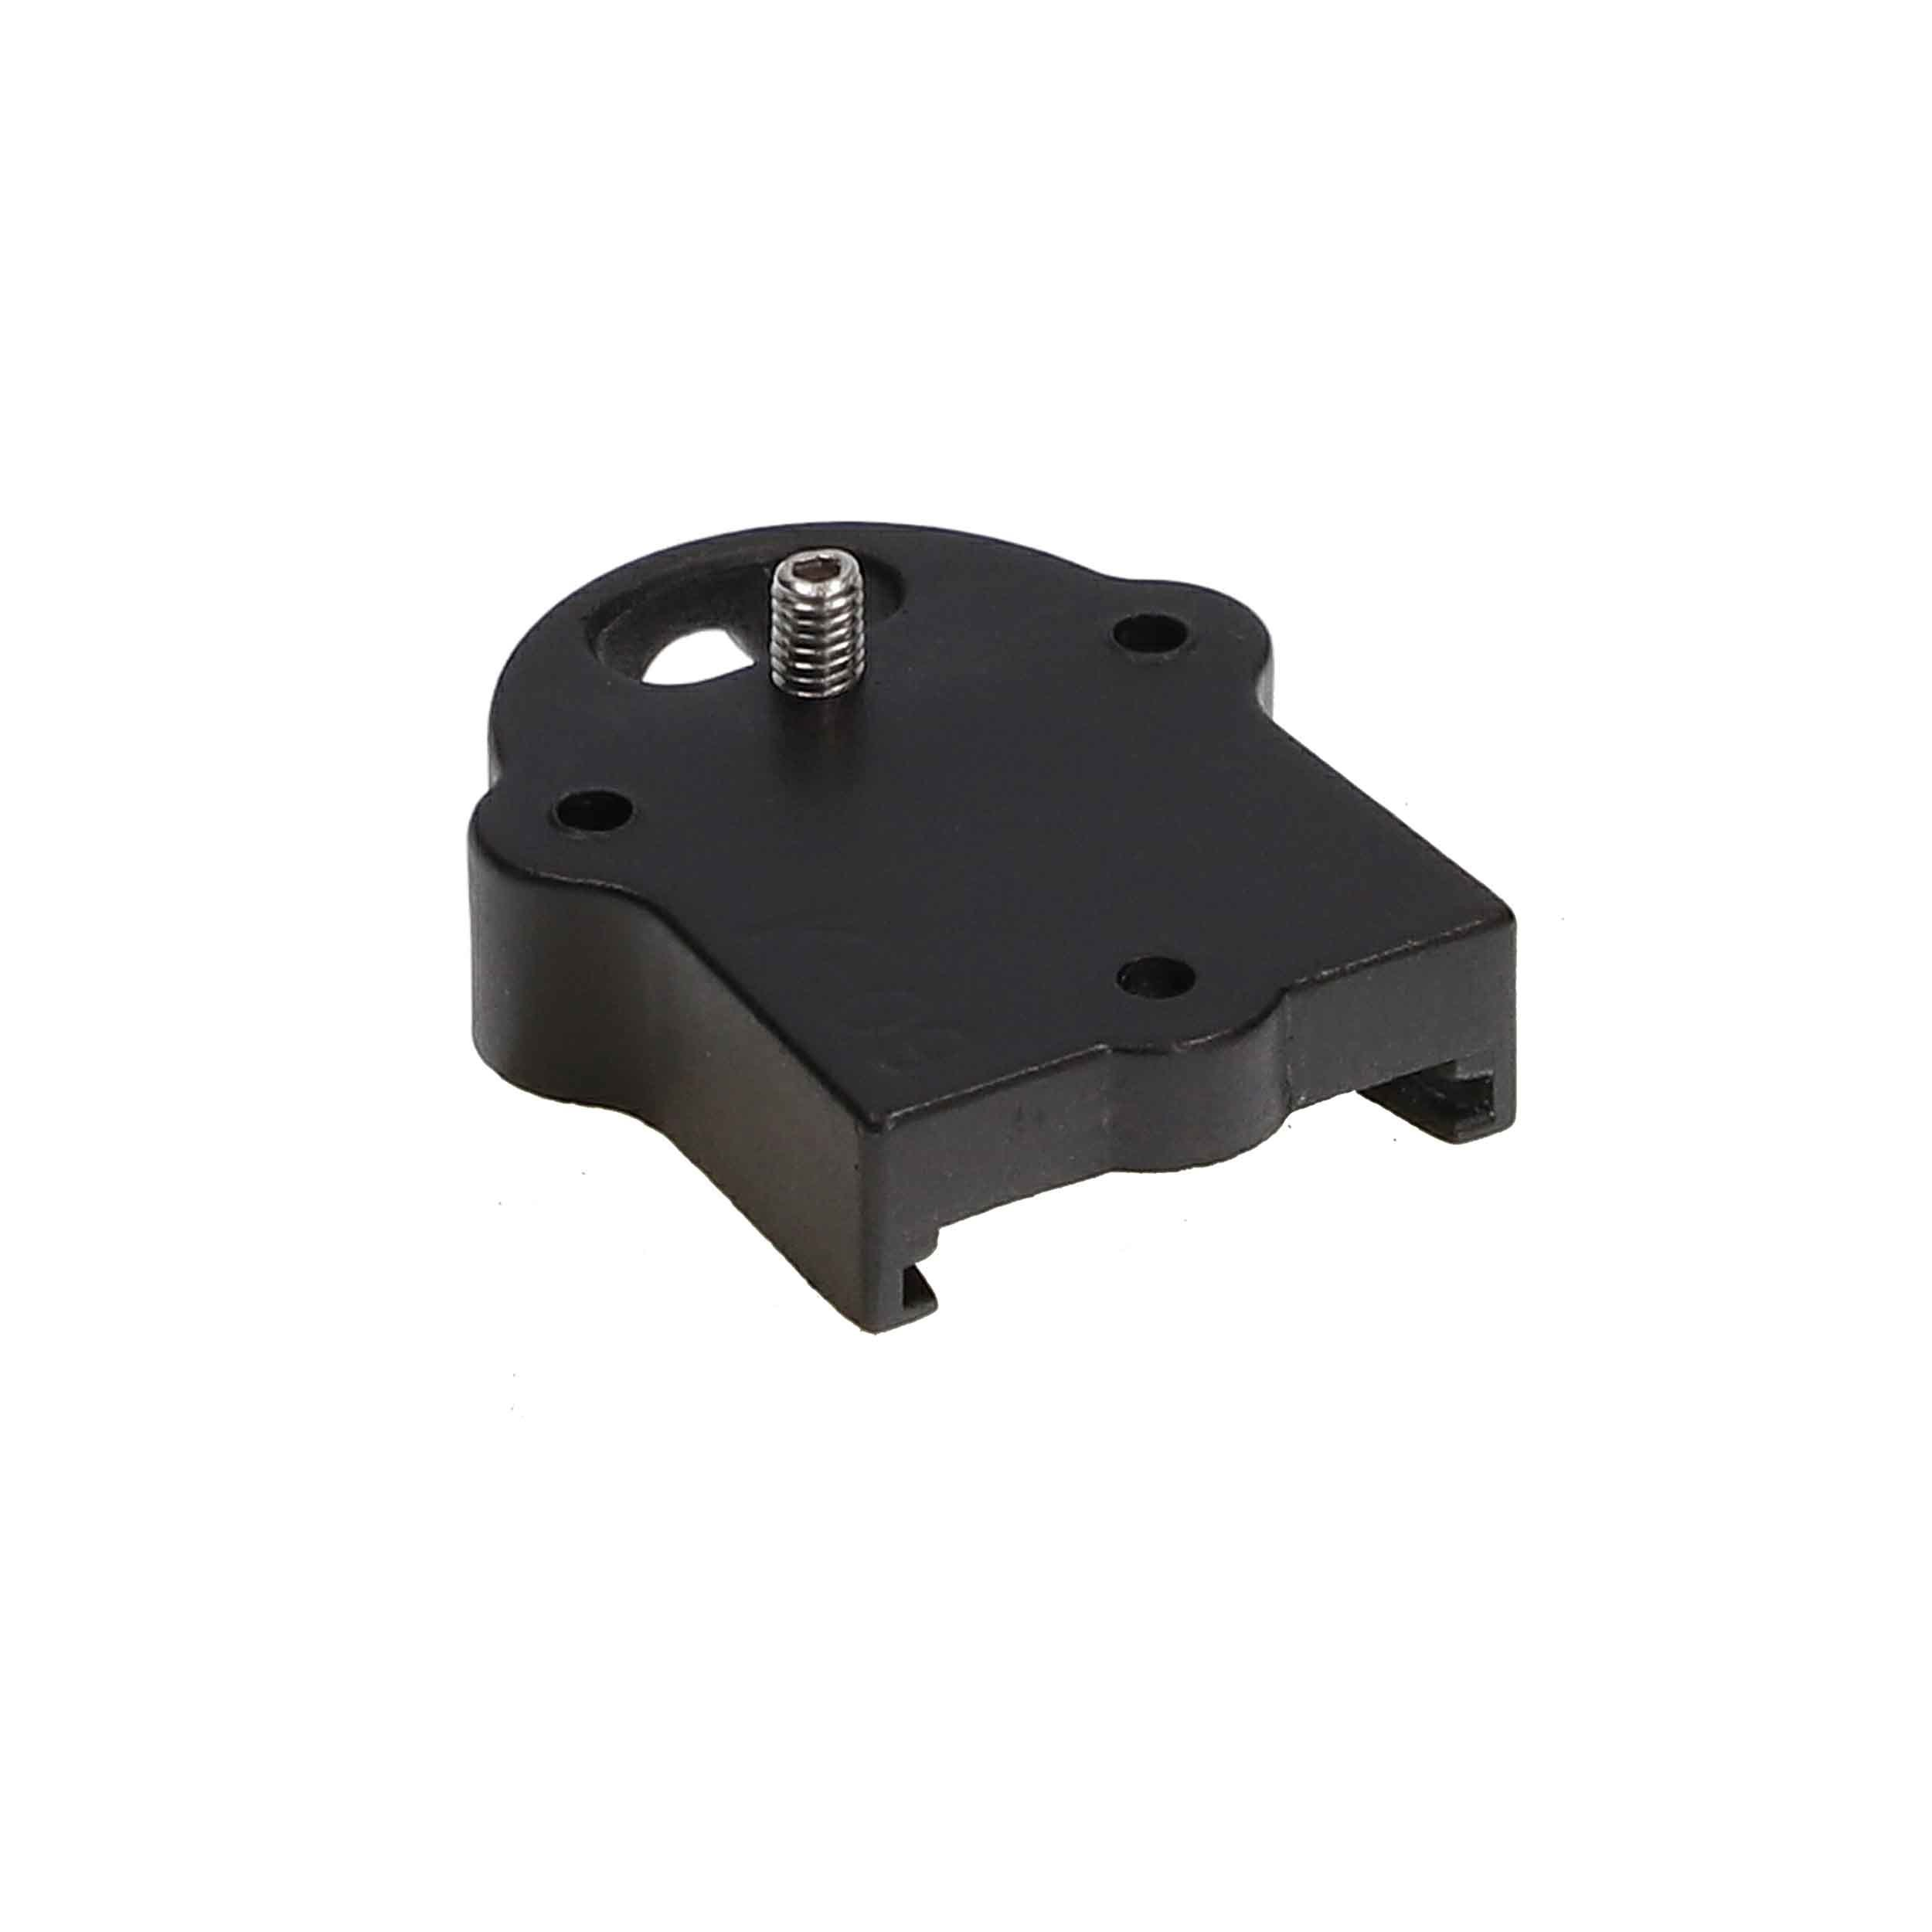 Fiat/Iveco/ Peugeot/Ford Factory Windshield Mount